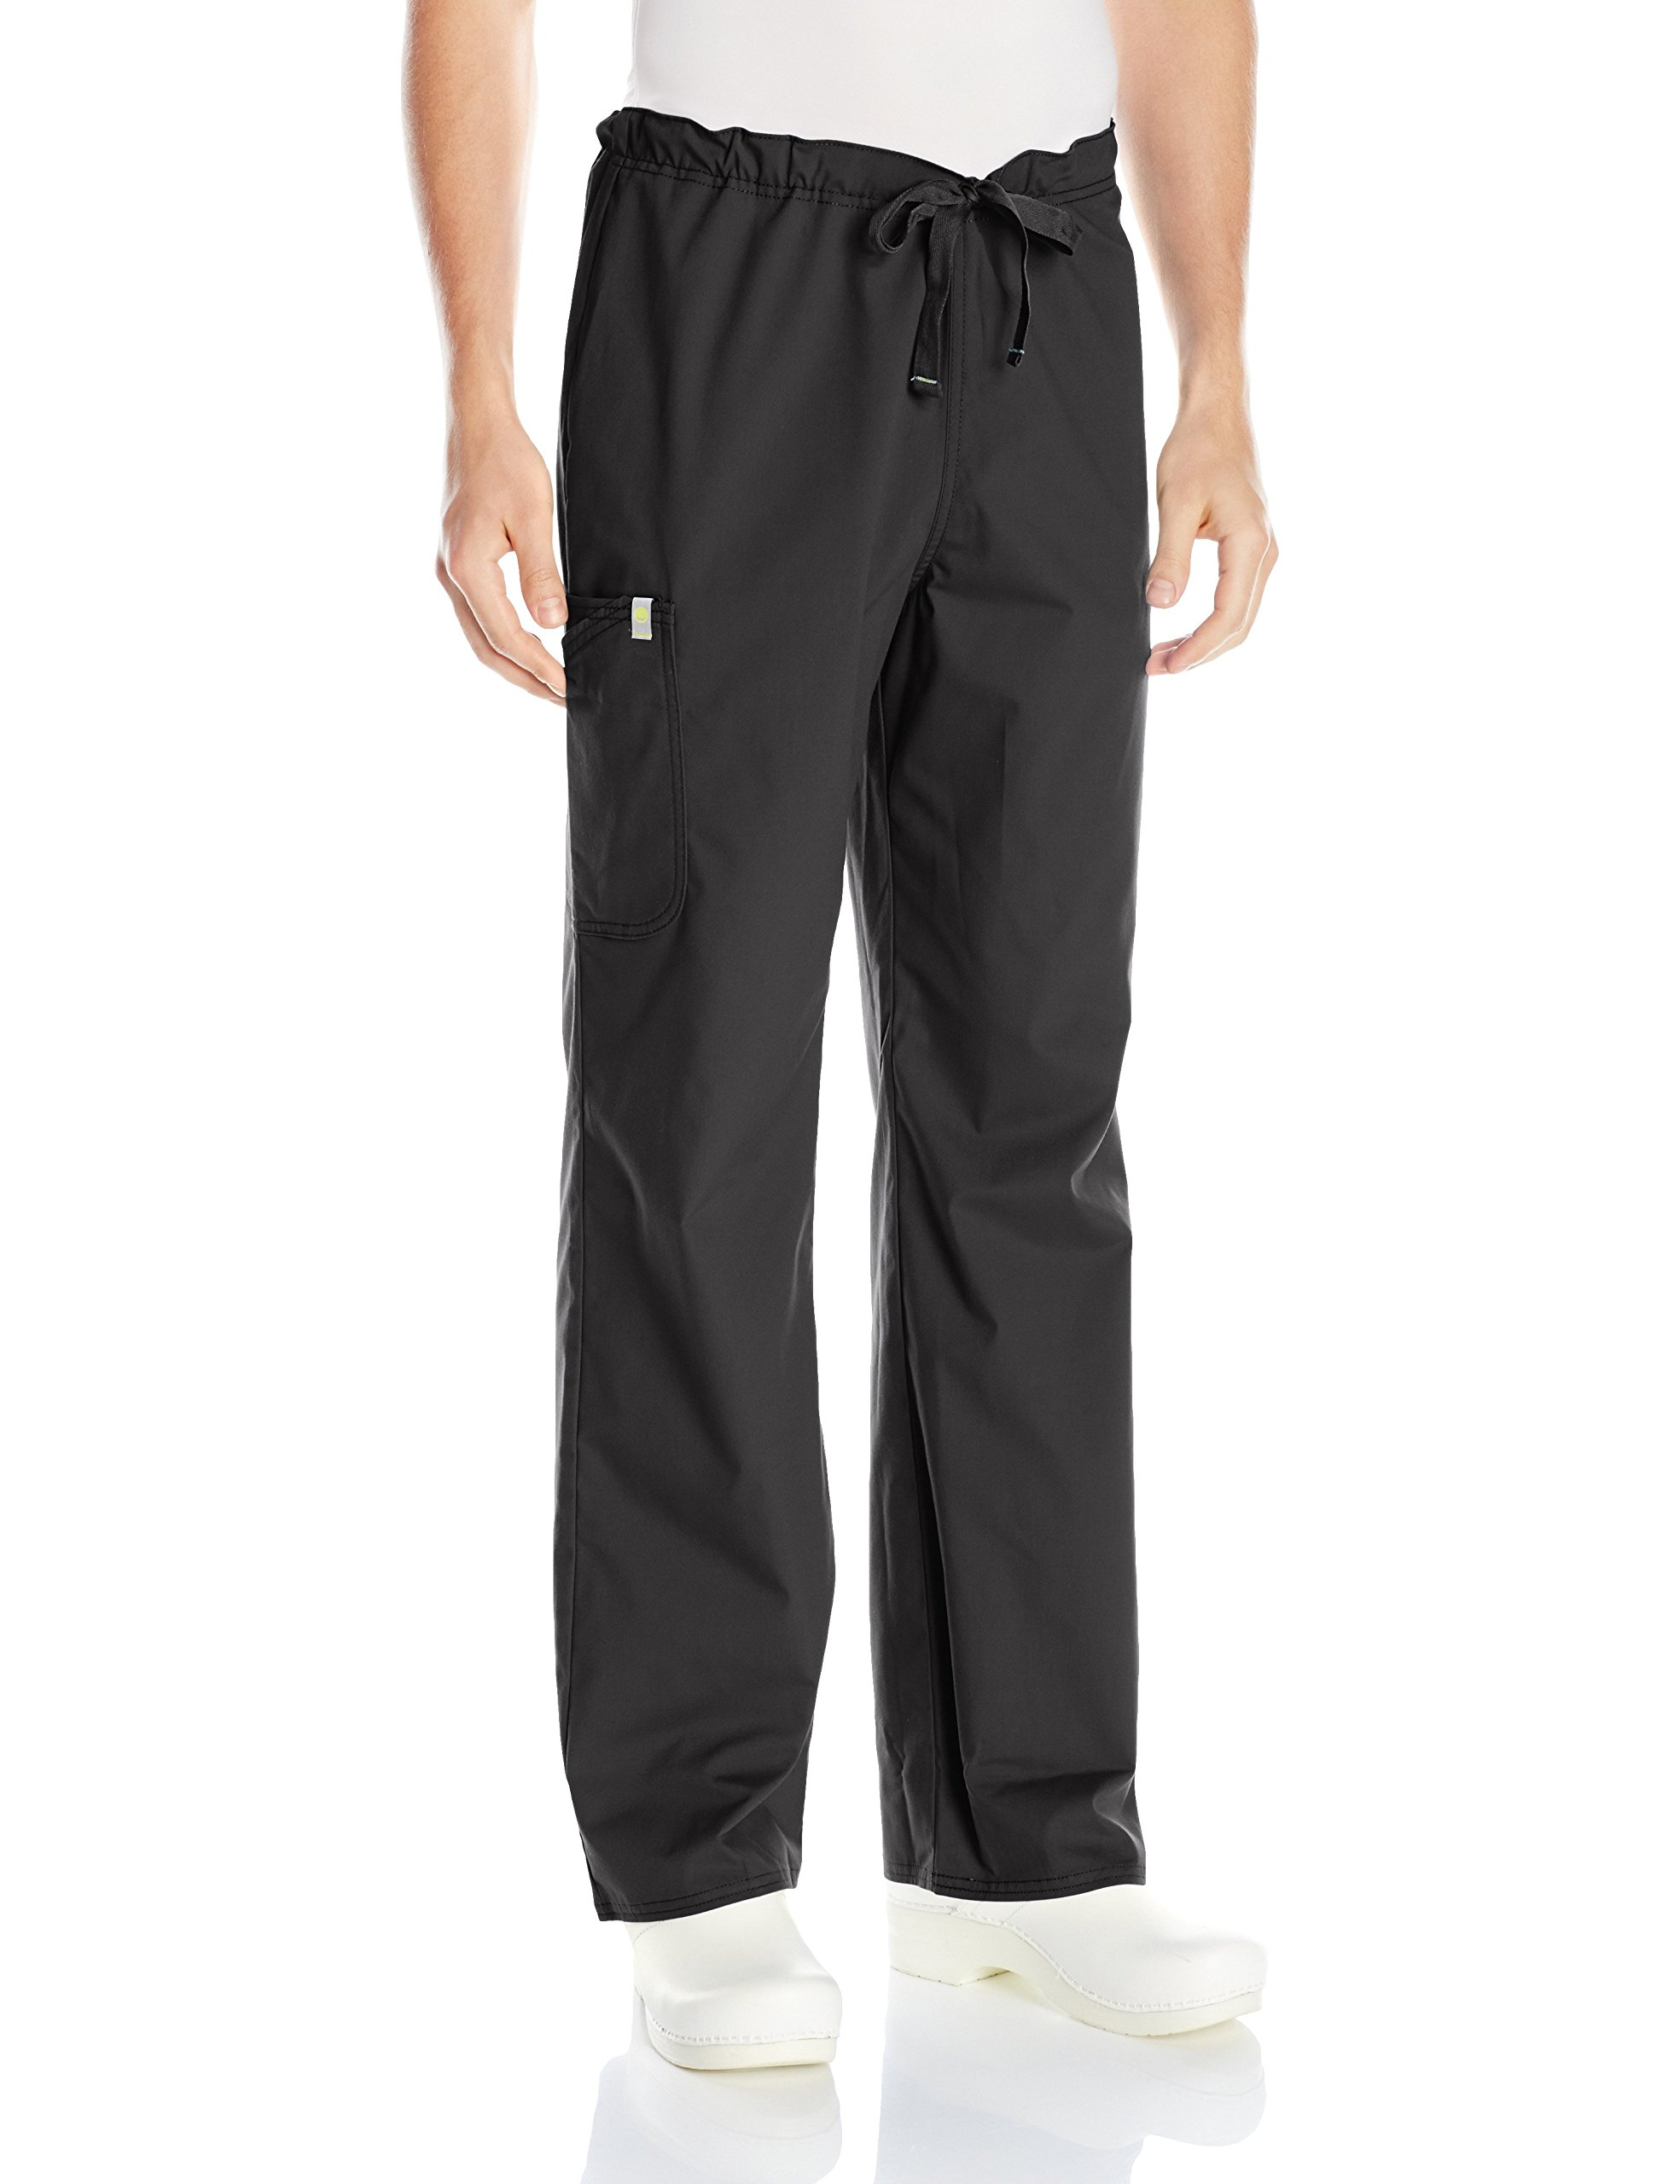 Code Happy Men's Bliss with Certainty Drawstring Scrub Cargo Pant, Black, Large